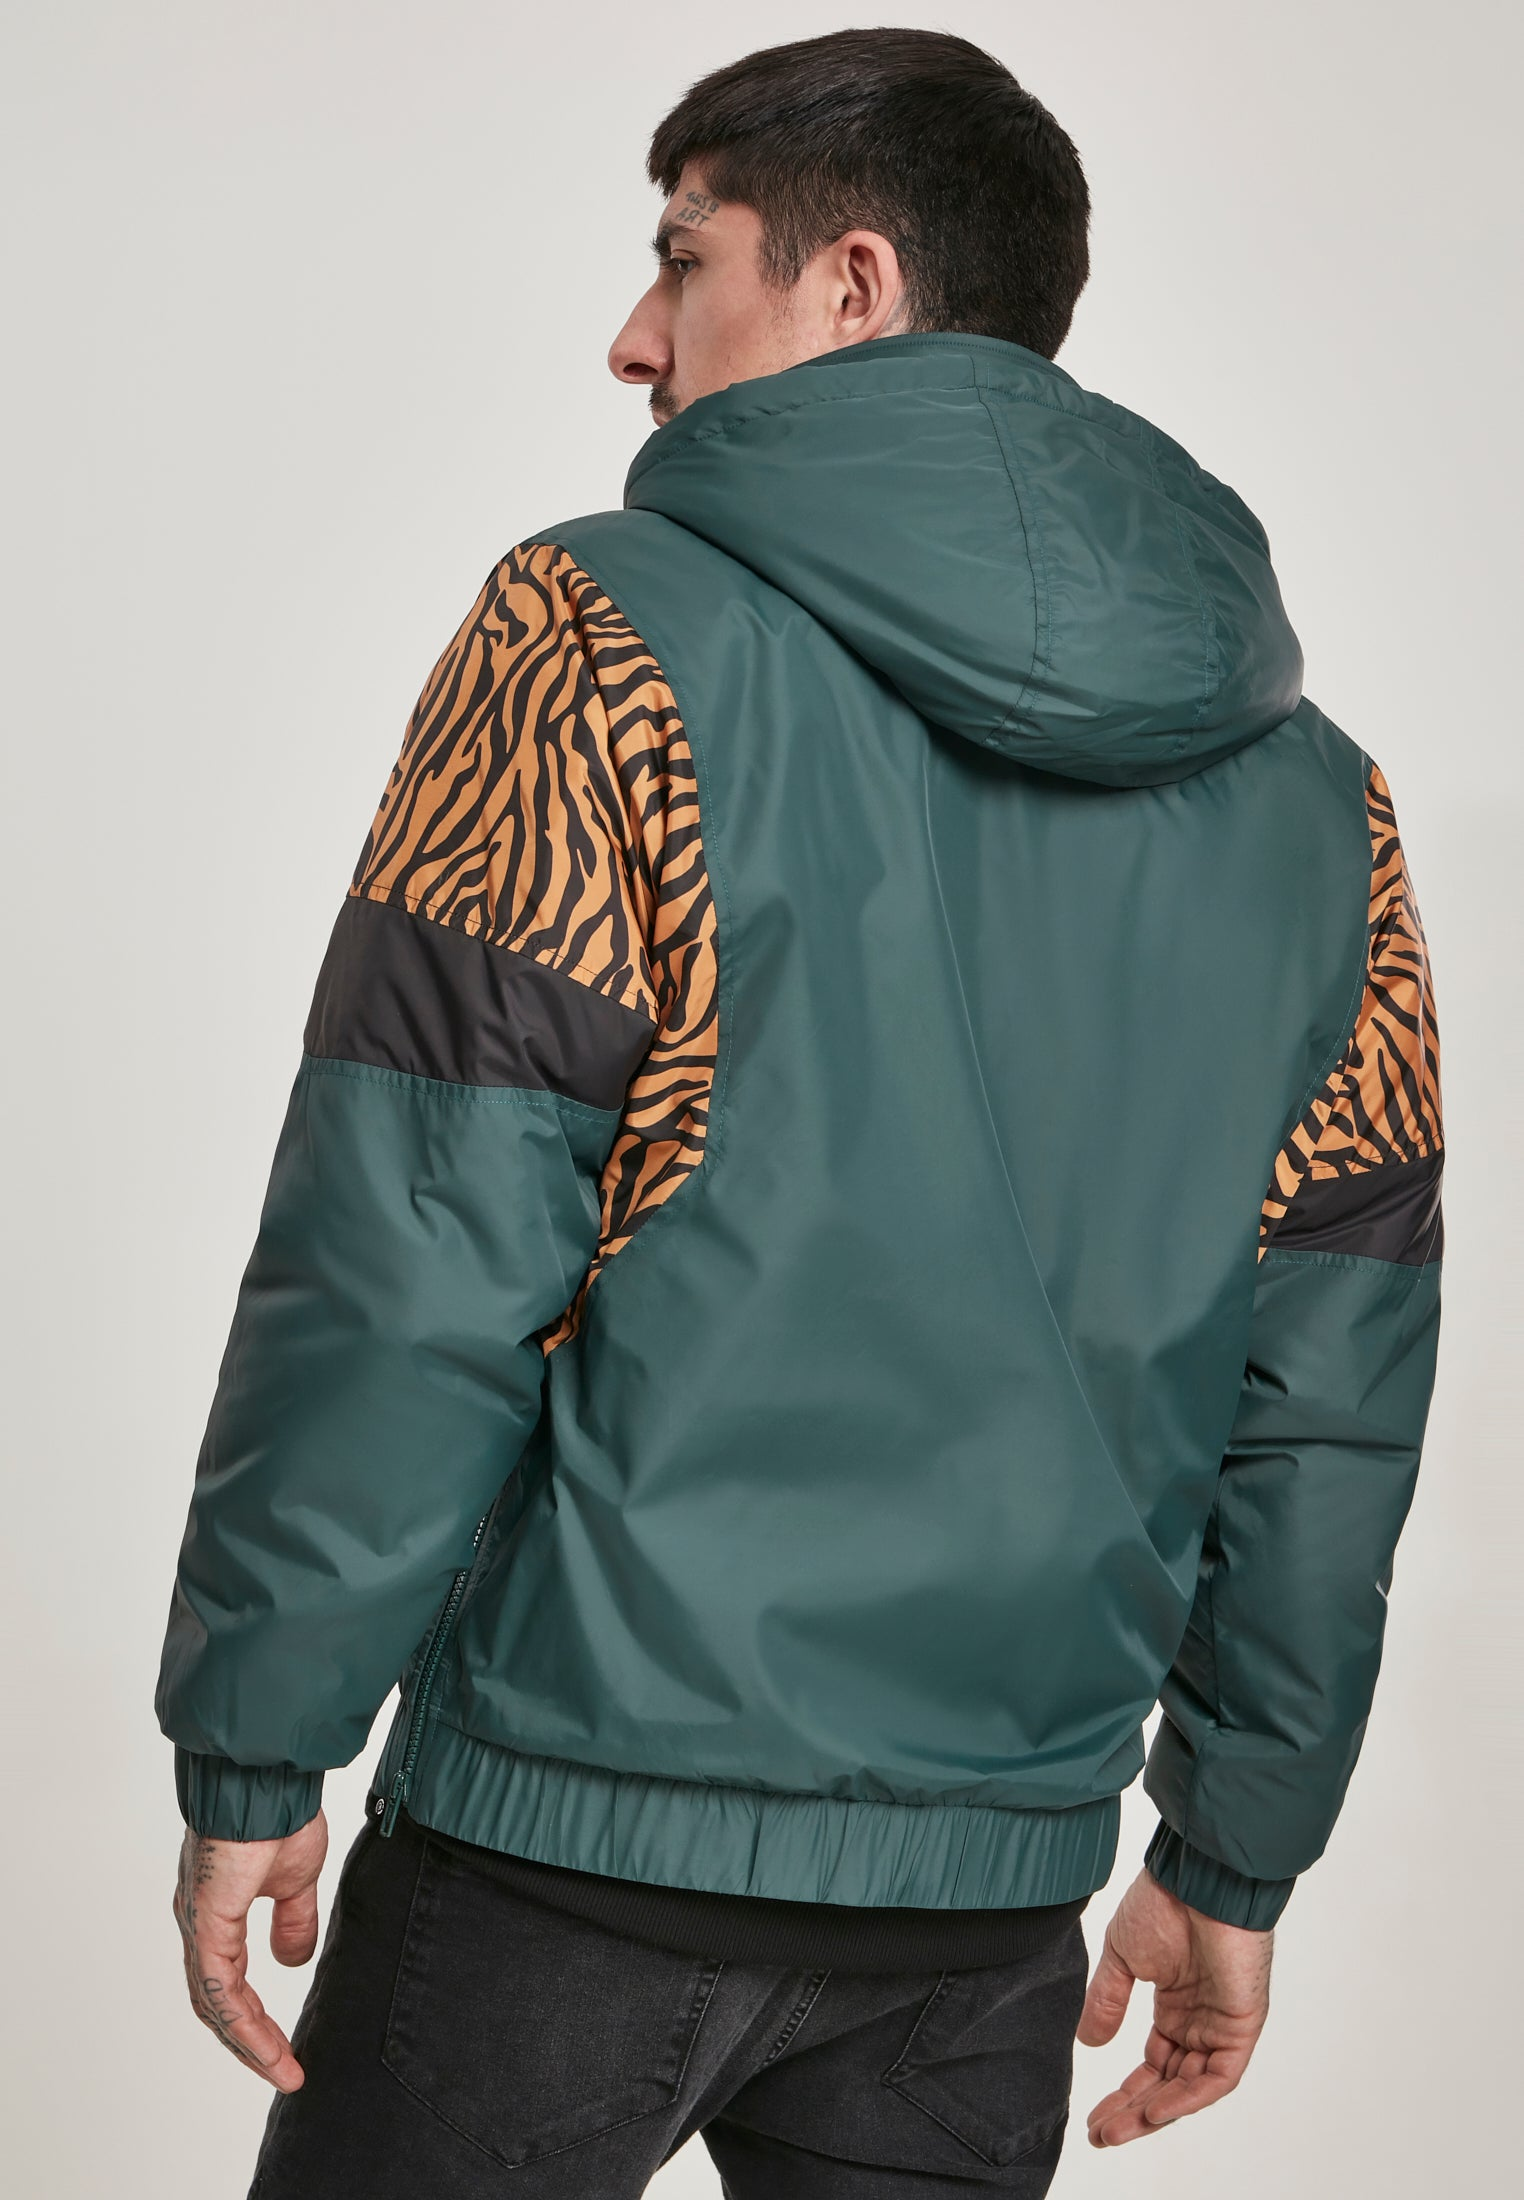 TB-3160 Animal Mixed Pull Over Jacket